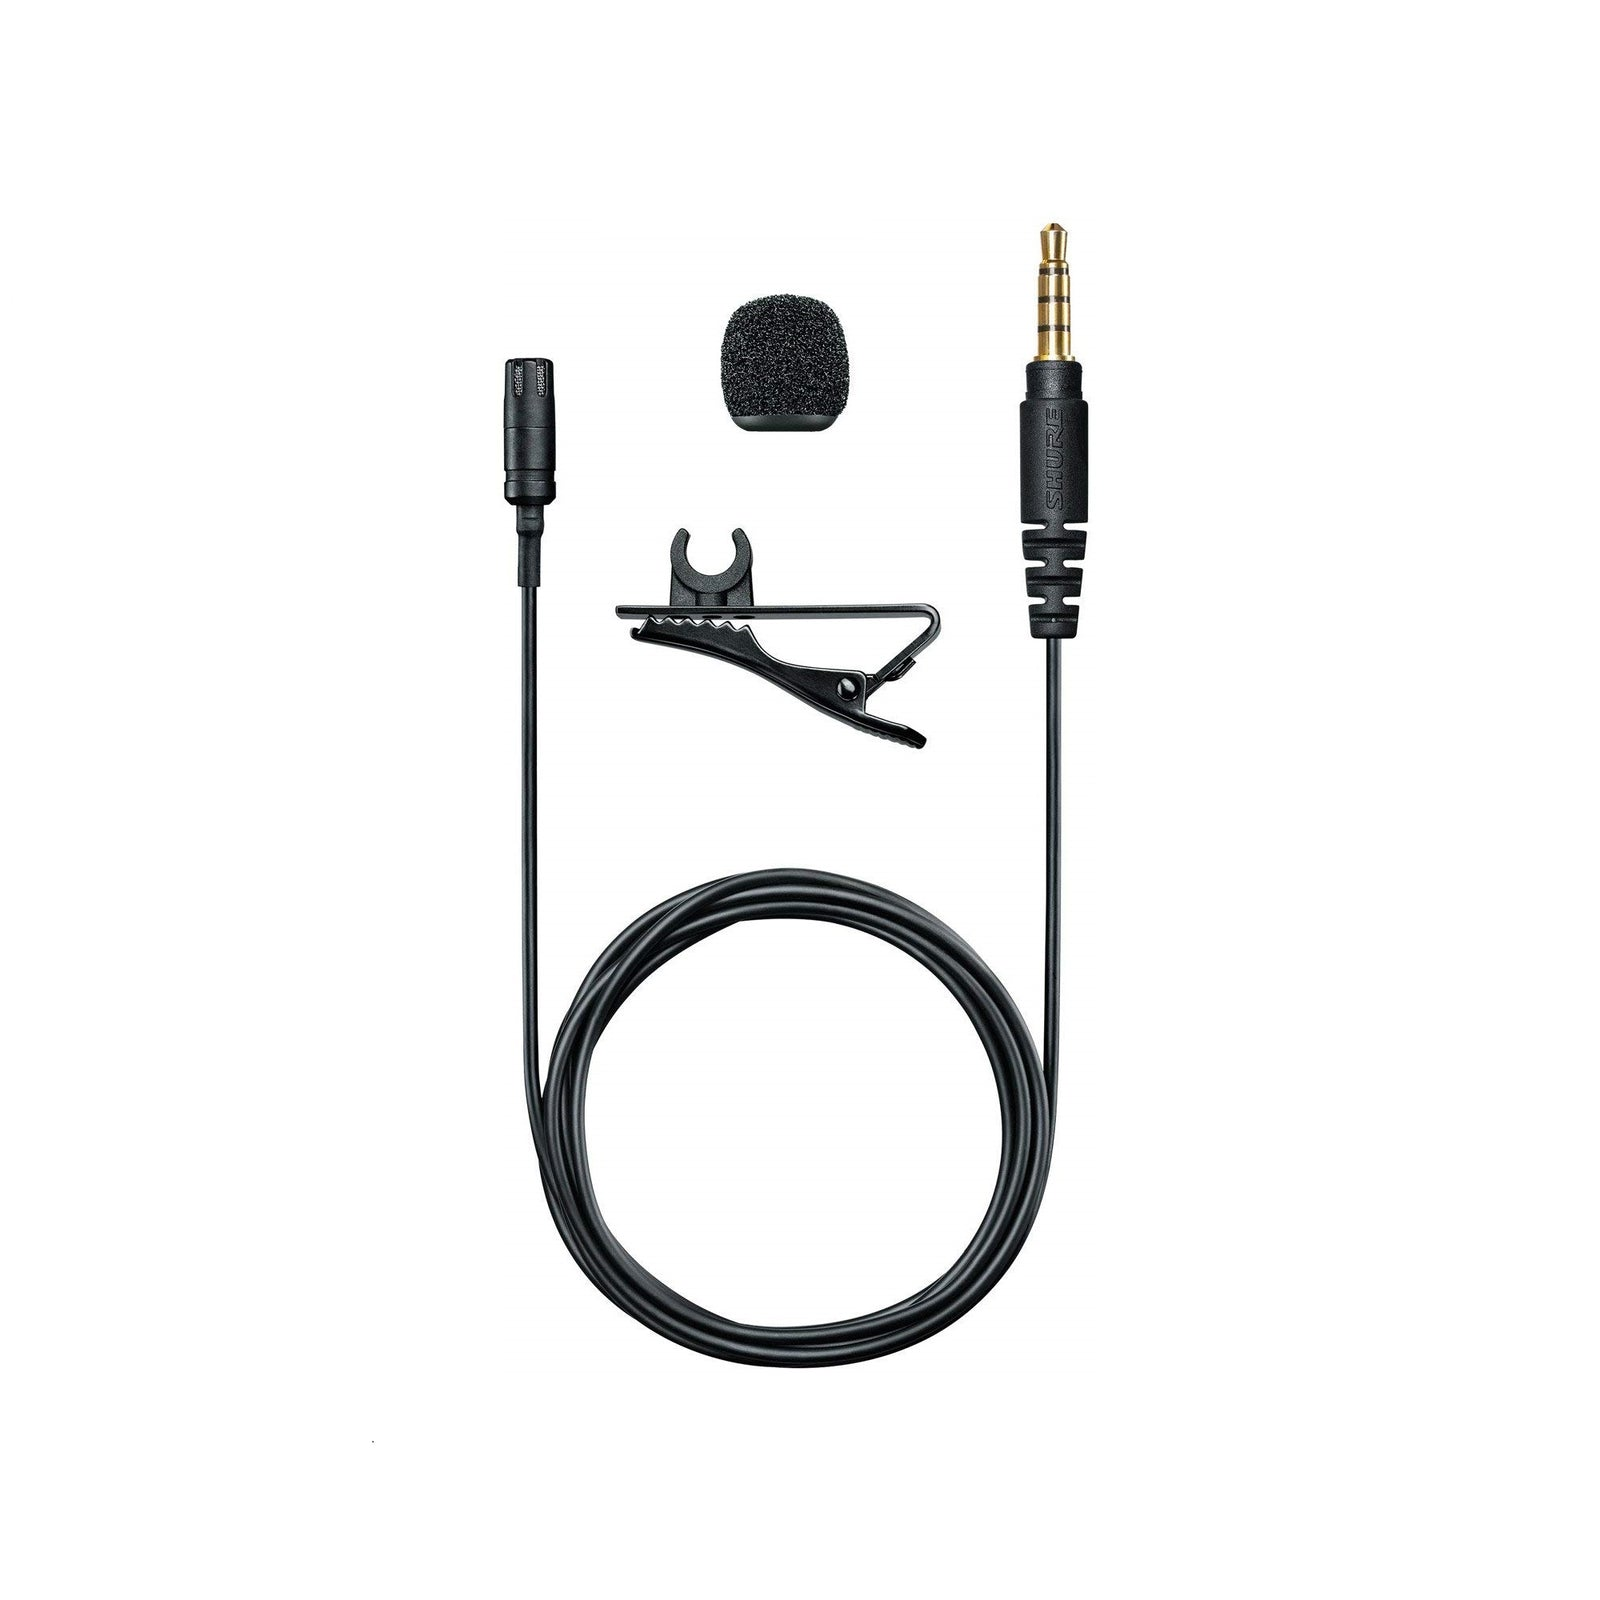 Shure MVL - Lavalier Condenser Microphone for iOS and Android